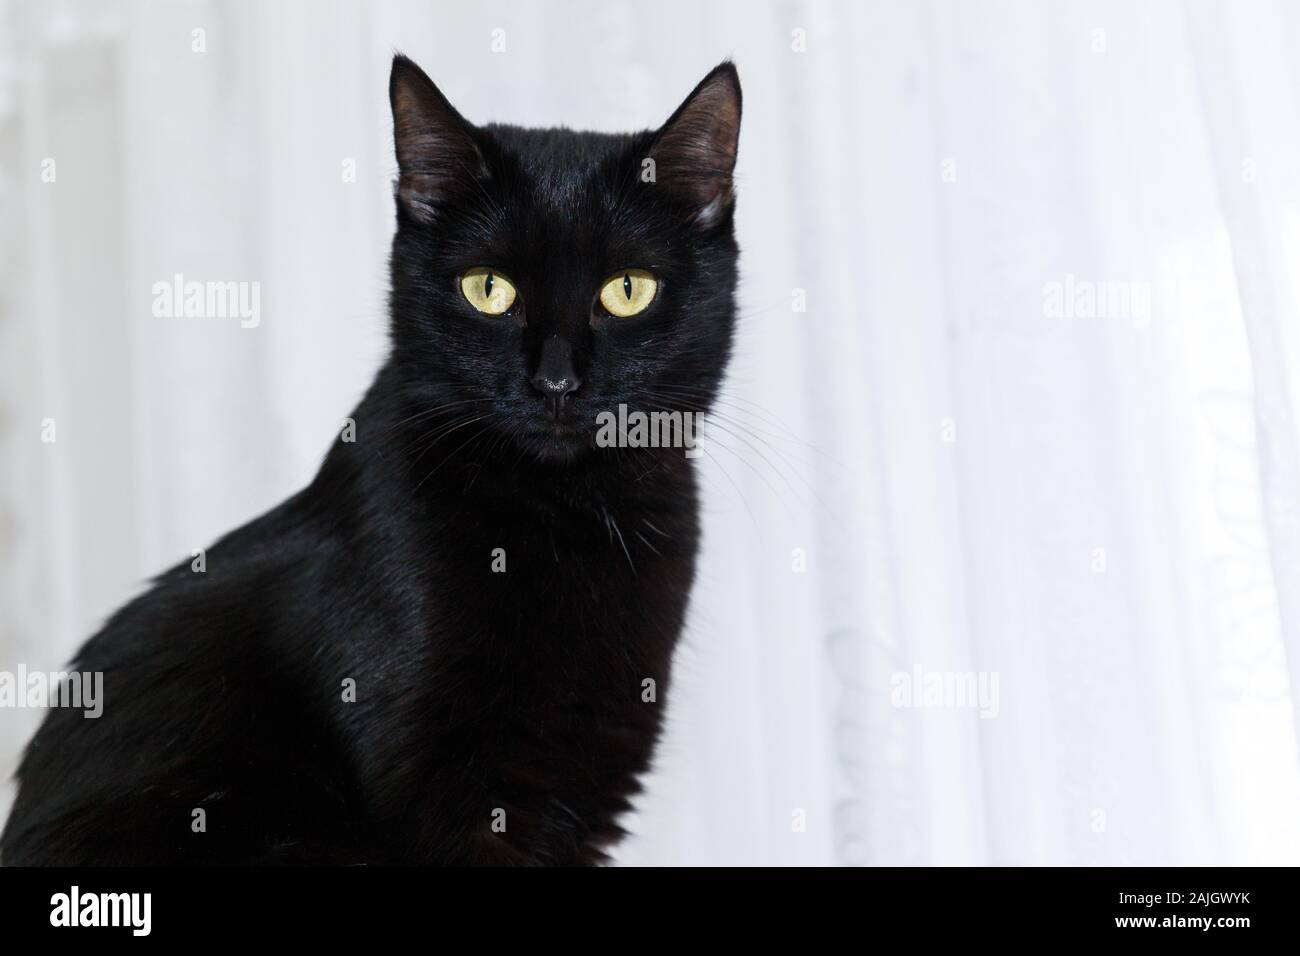 portrait of a black domestic cat on a white background with light eyes. Close-up portrait of a black cat. Stock Photo